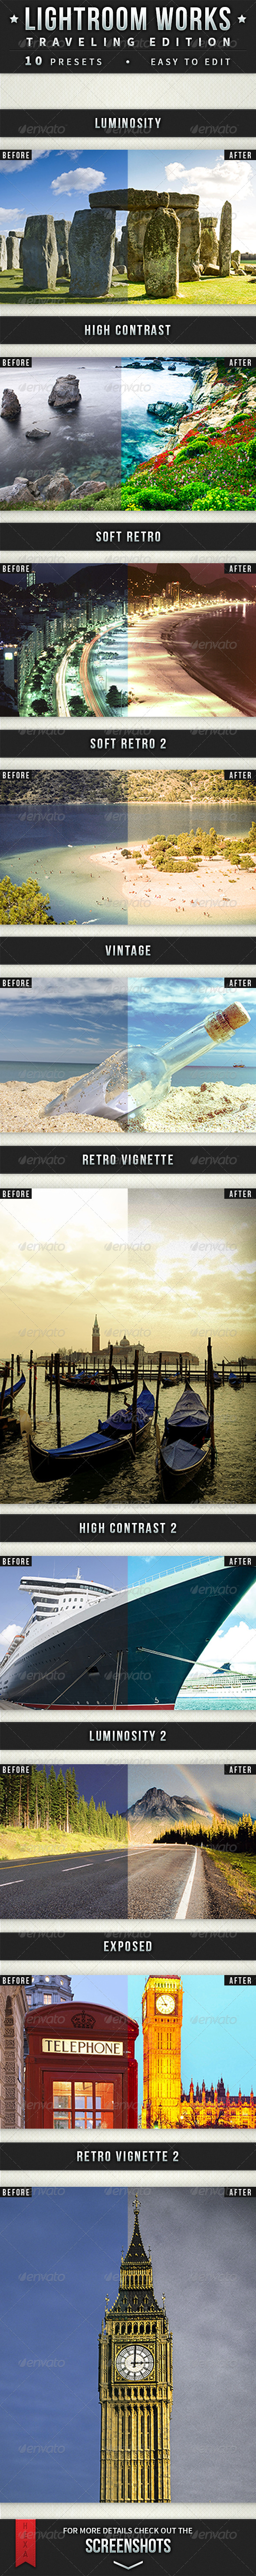 GraphicRiver Lightroom Works 4726667